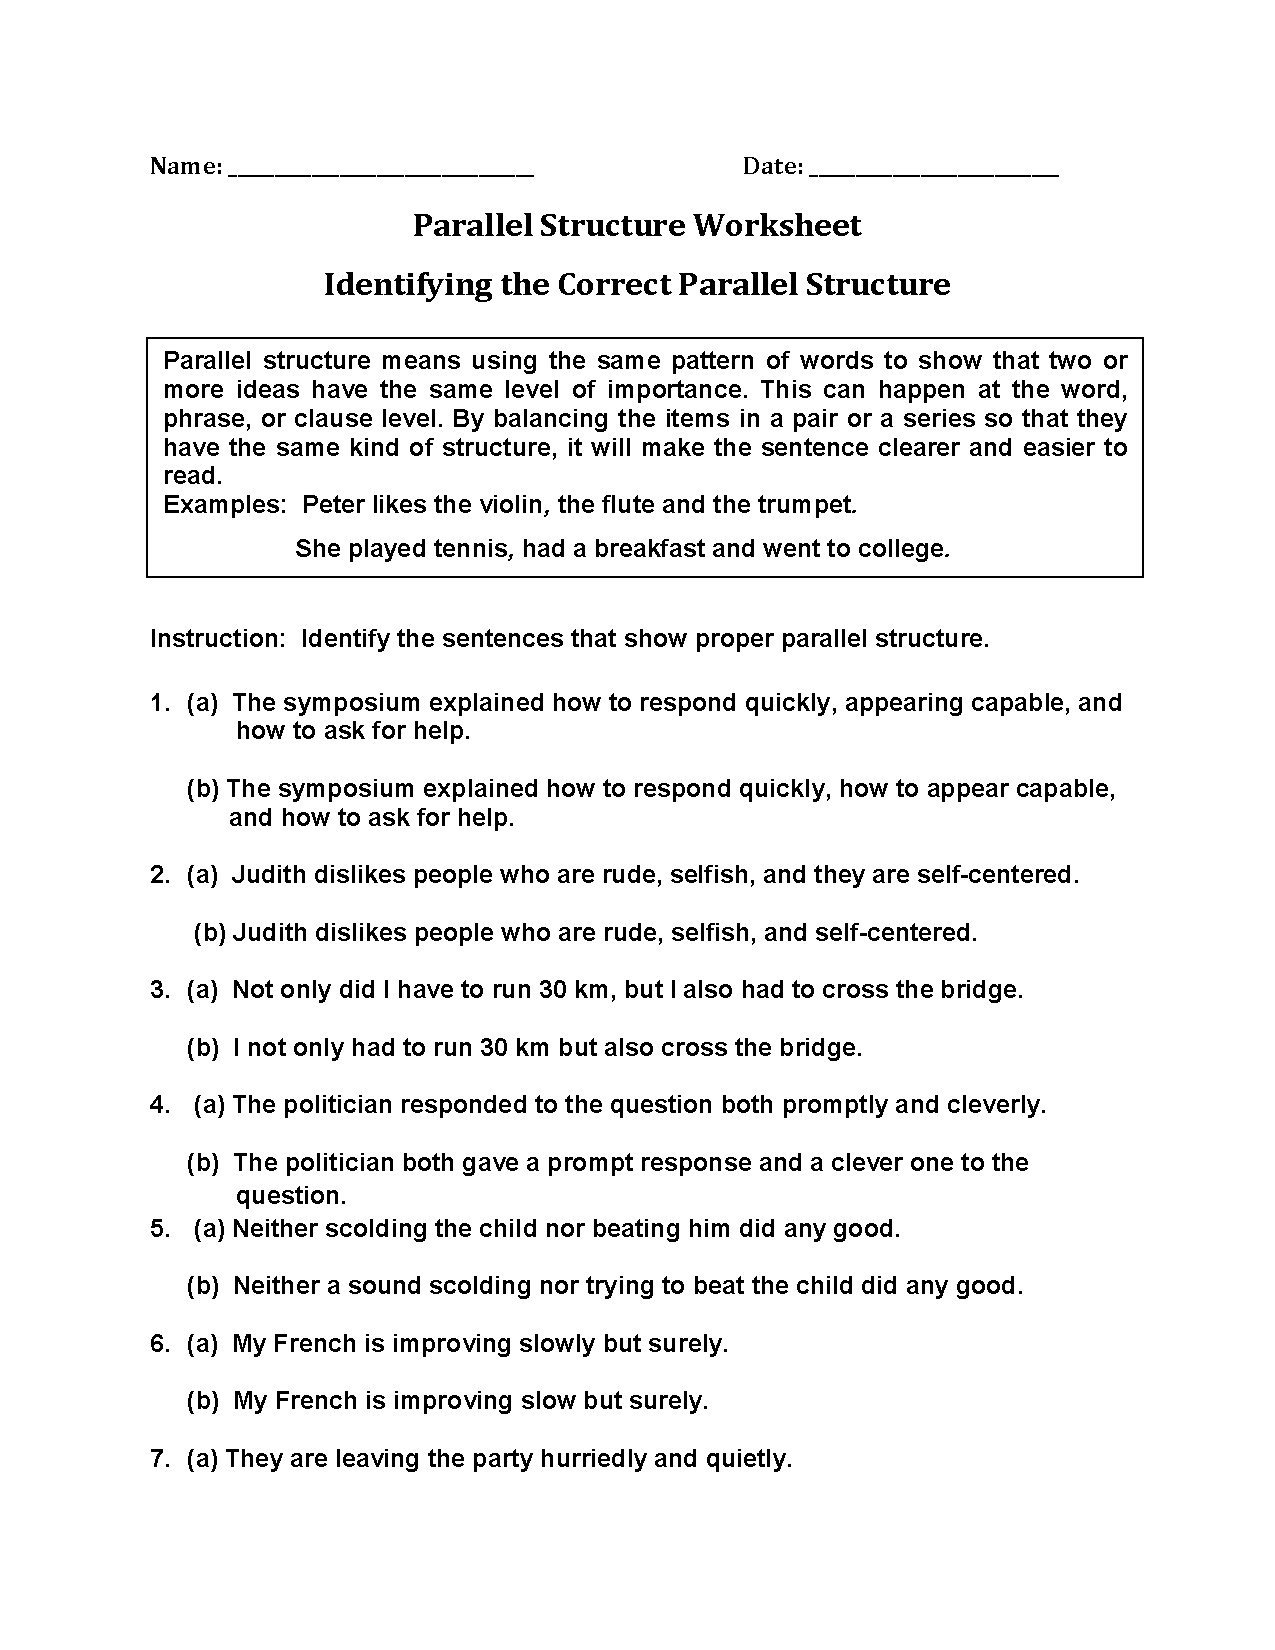 Parallel Sentence Structure Worksheet Worksheets for all ...